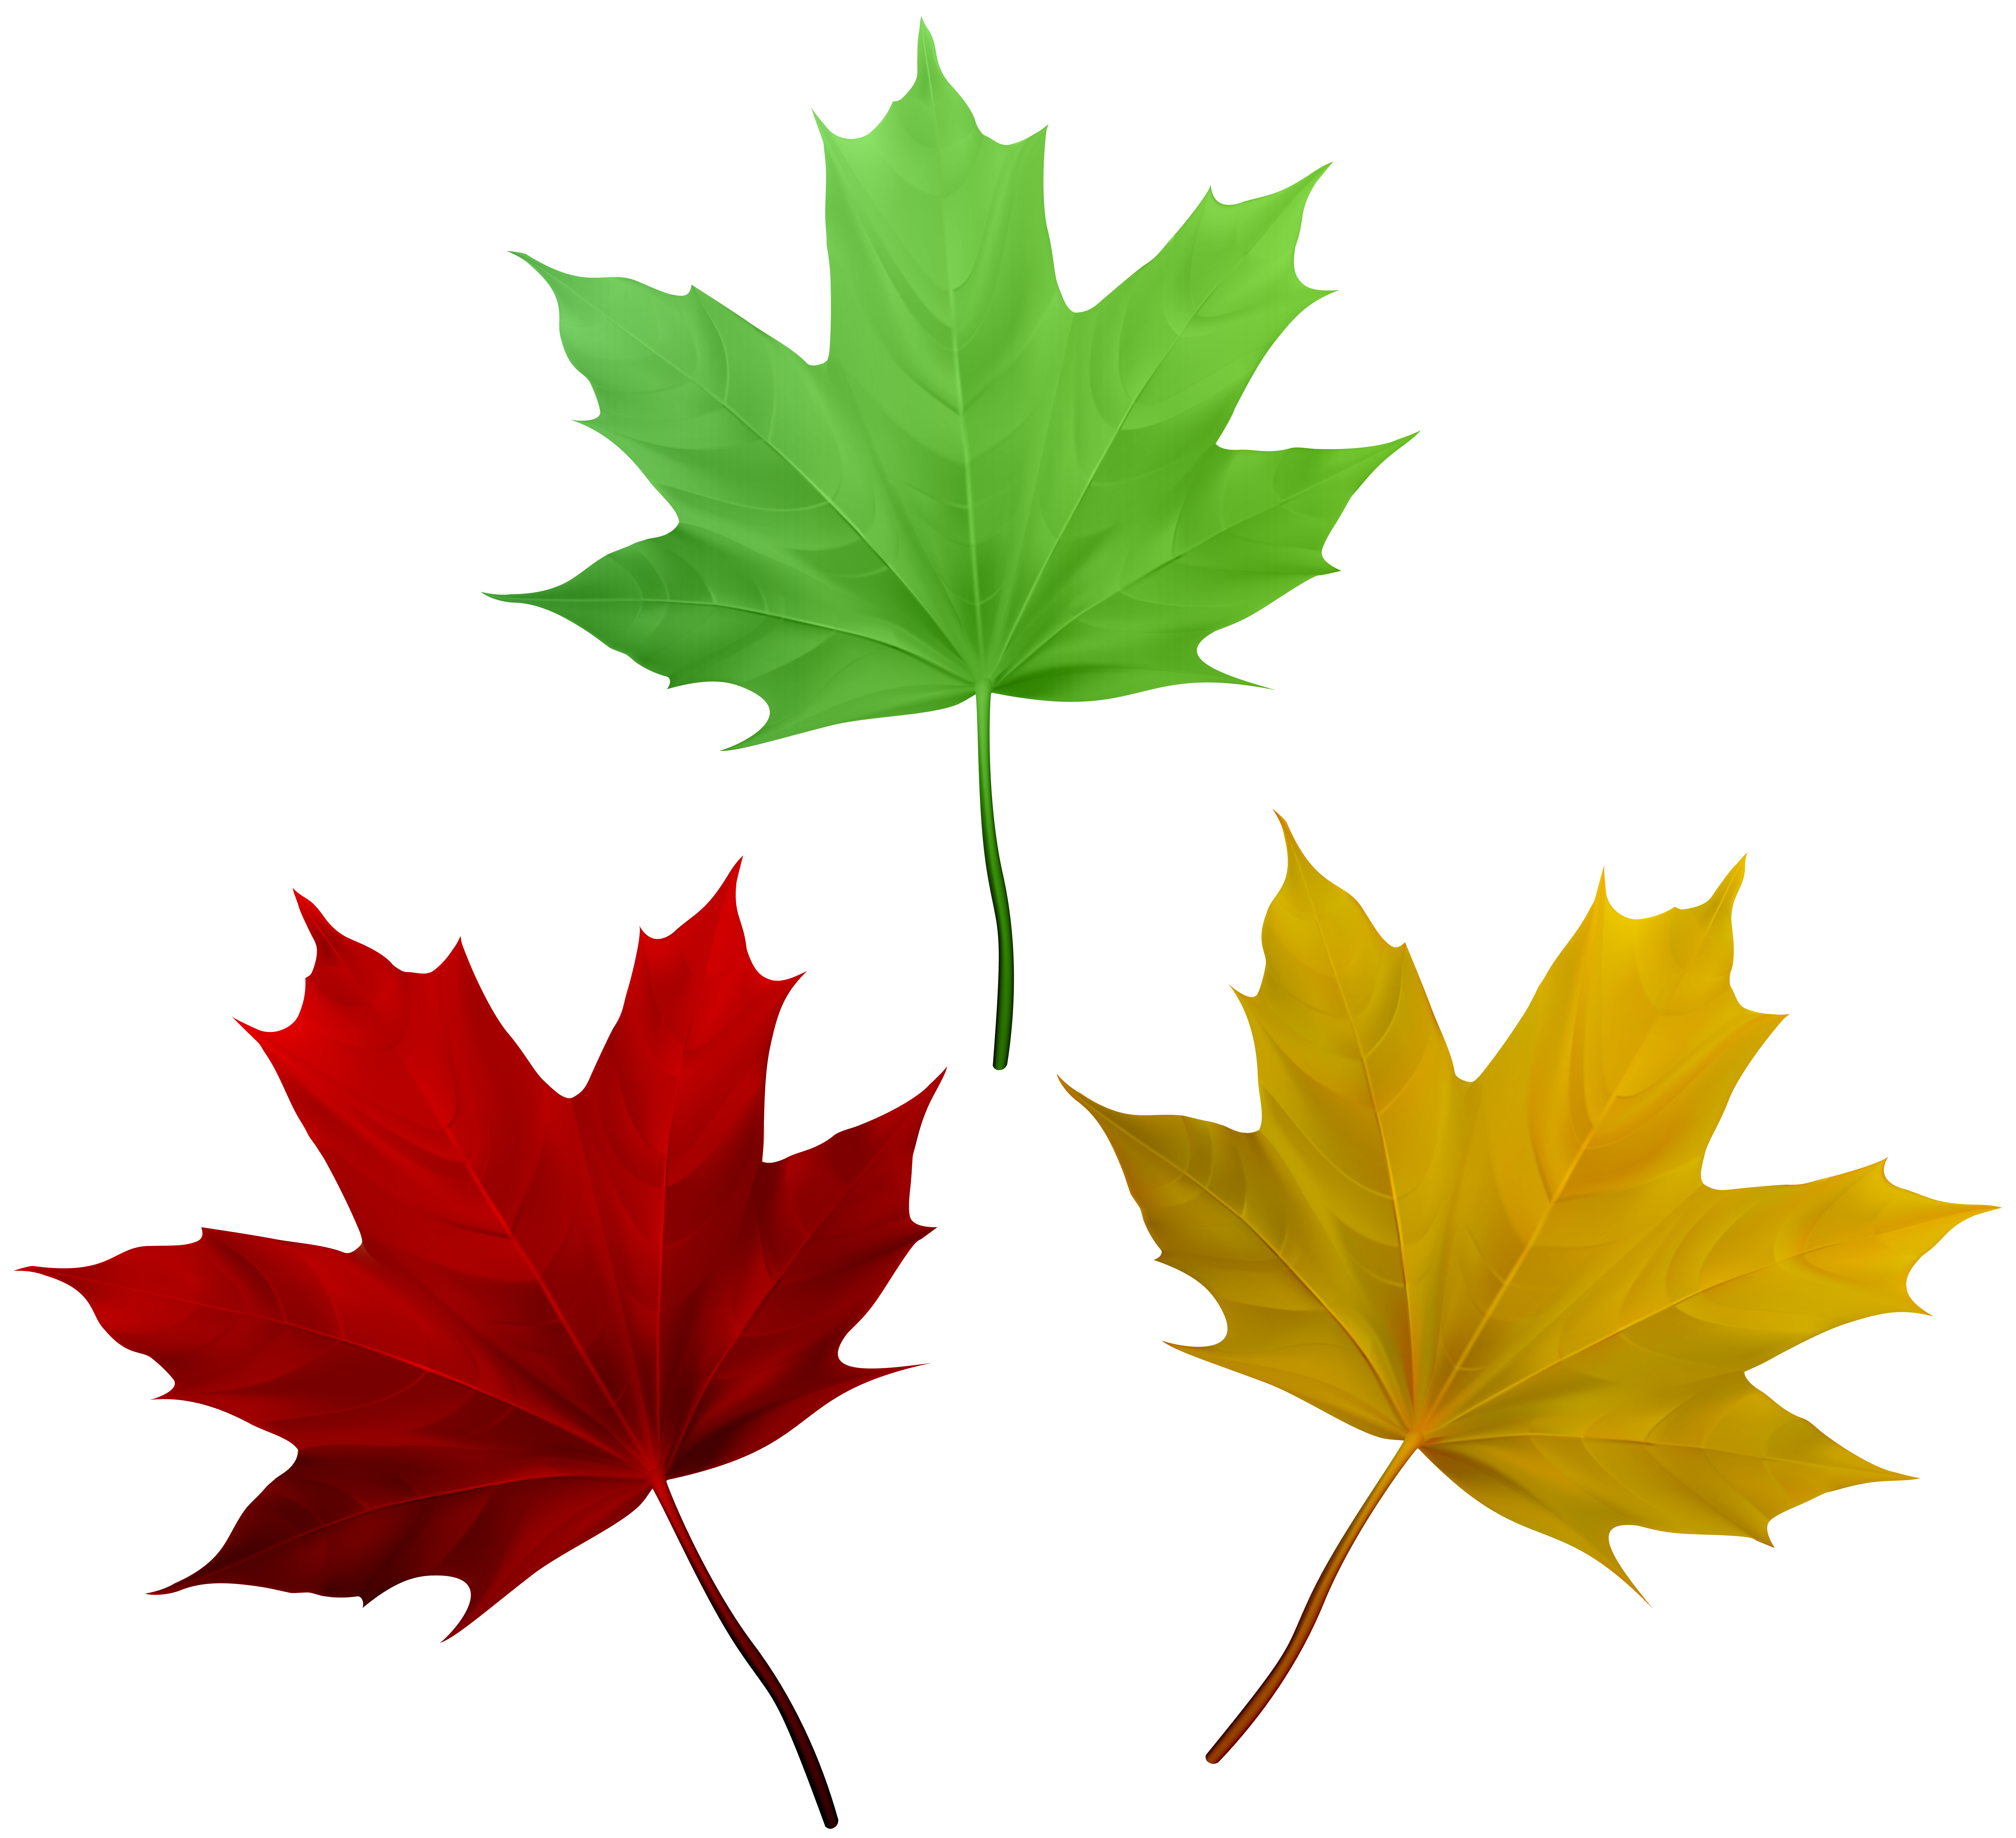 Fall leaves set png. Watermelon clipart leaf